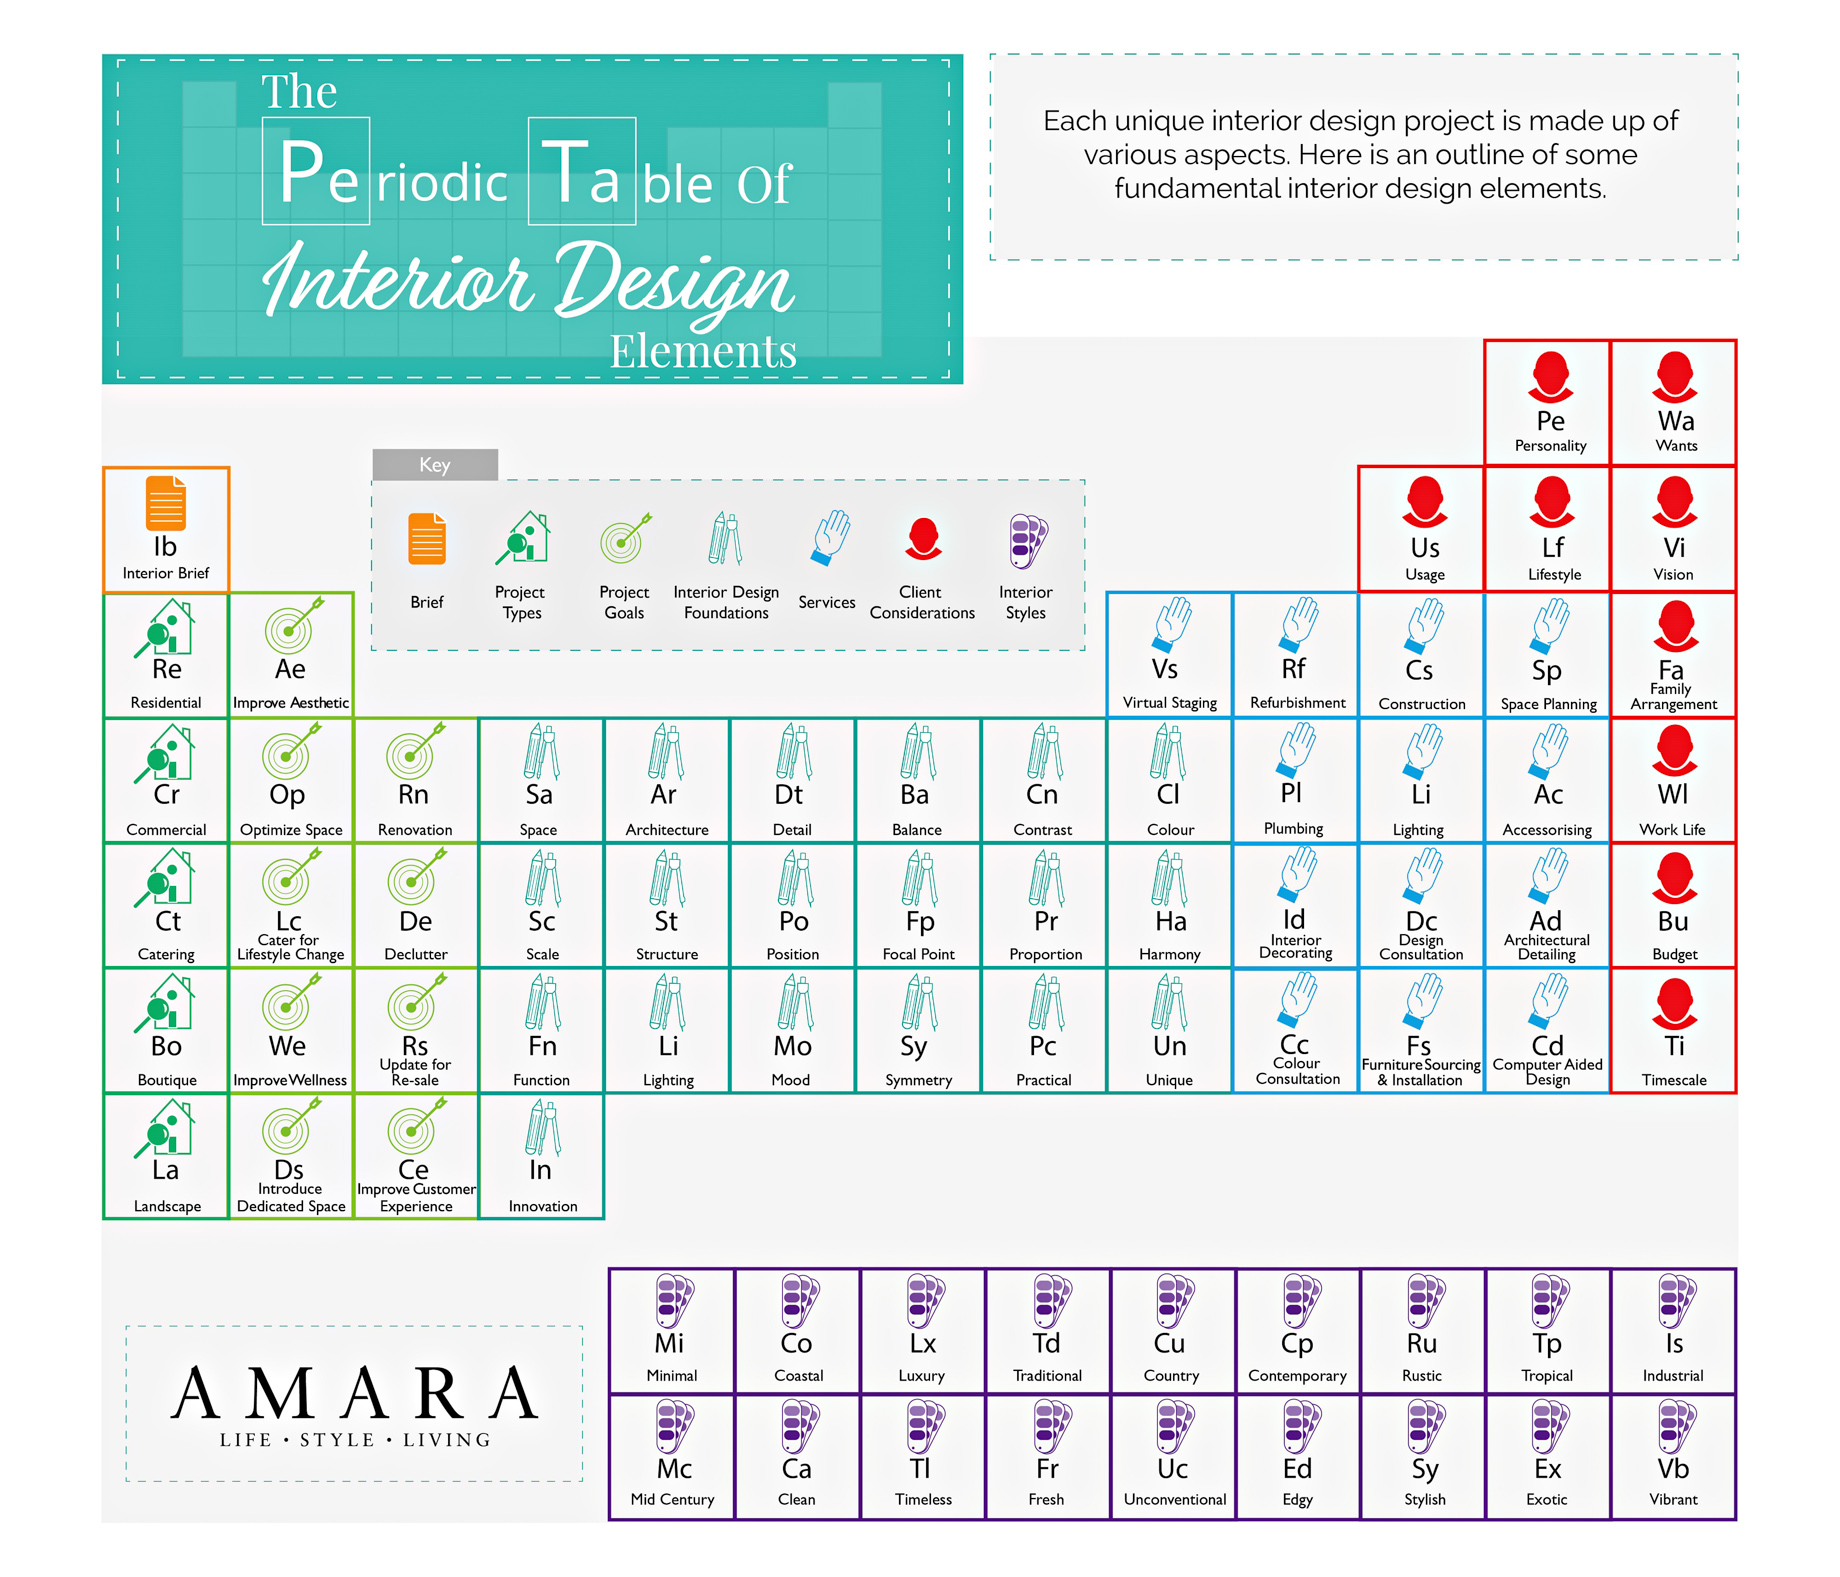 The Periodic Table of Interior Design Elements - Infographic